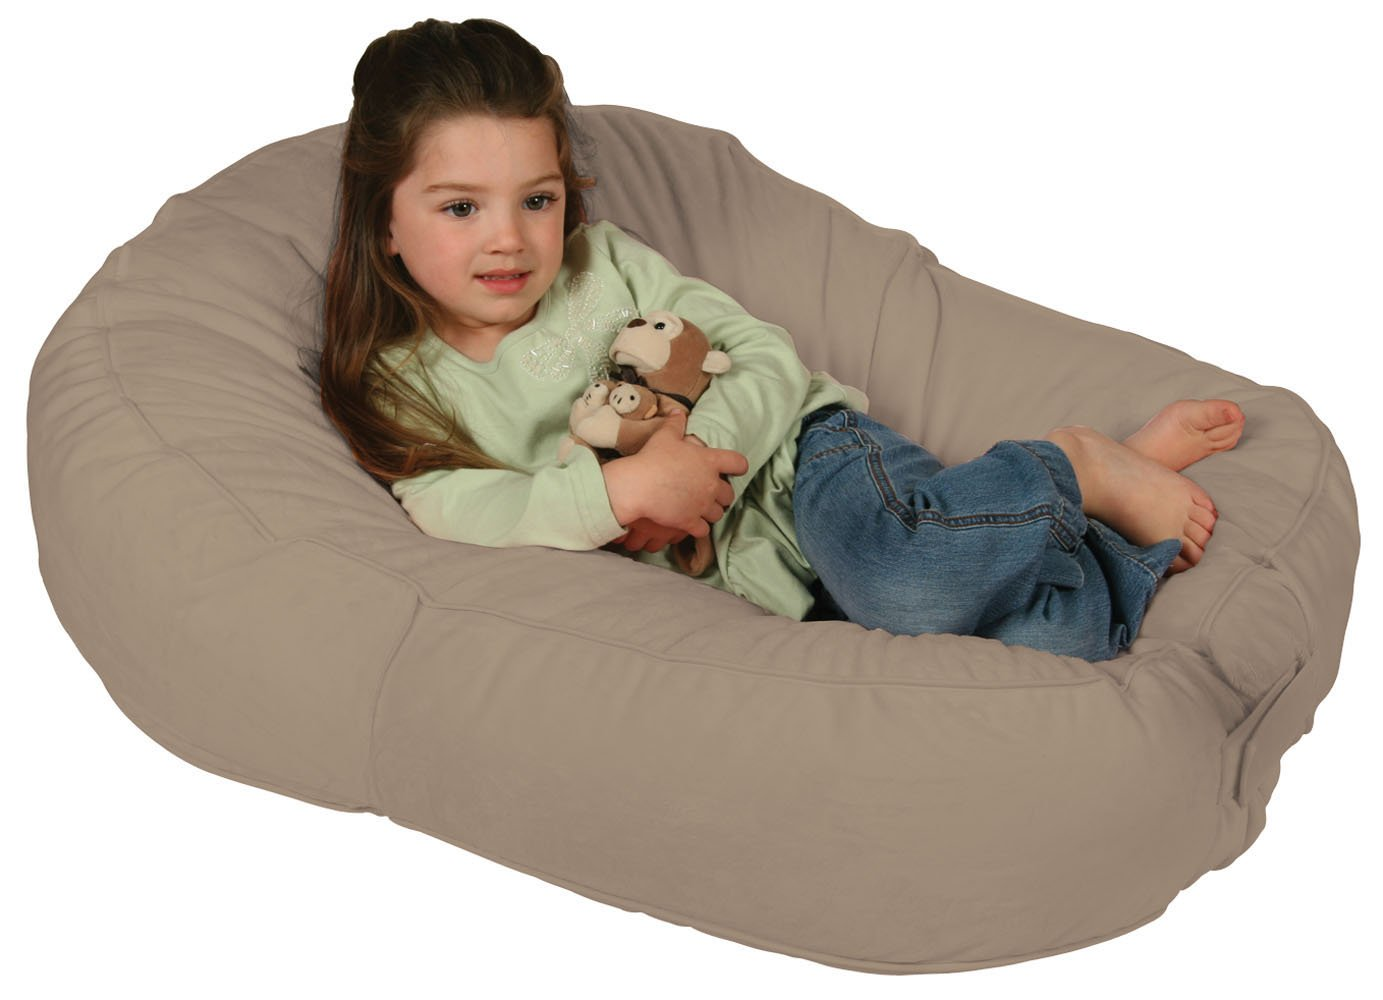 Top 9 Best Bean Bag Chairs For Kids (2020 Reviews & Guide) 1